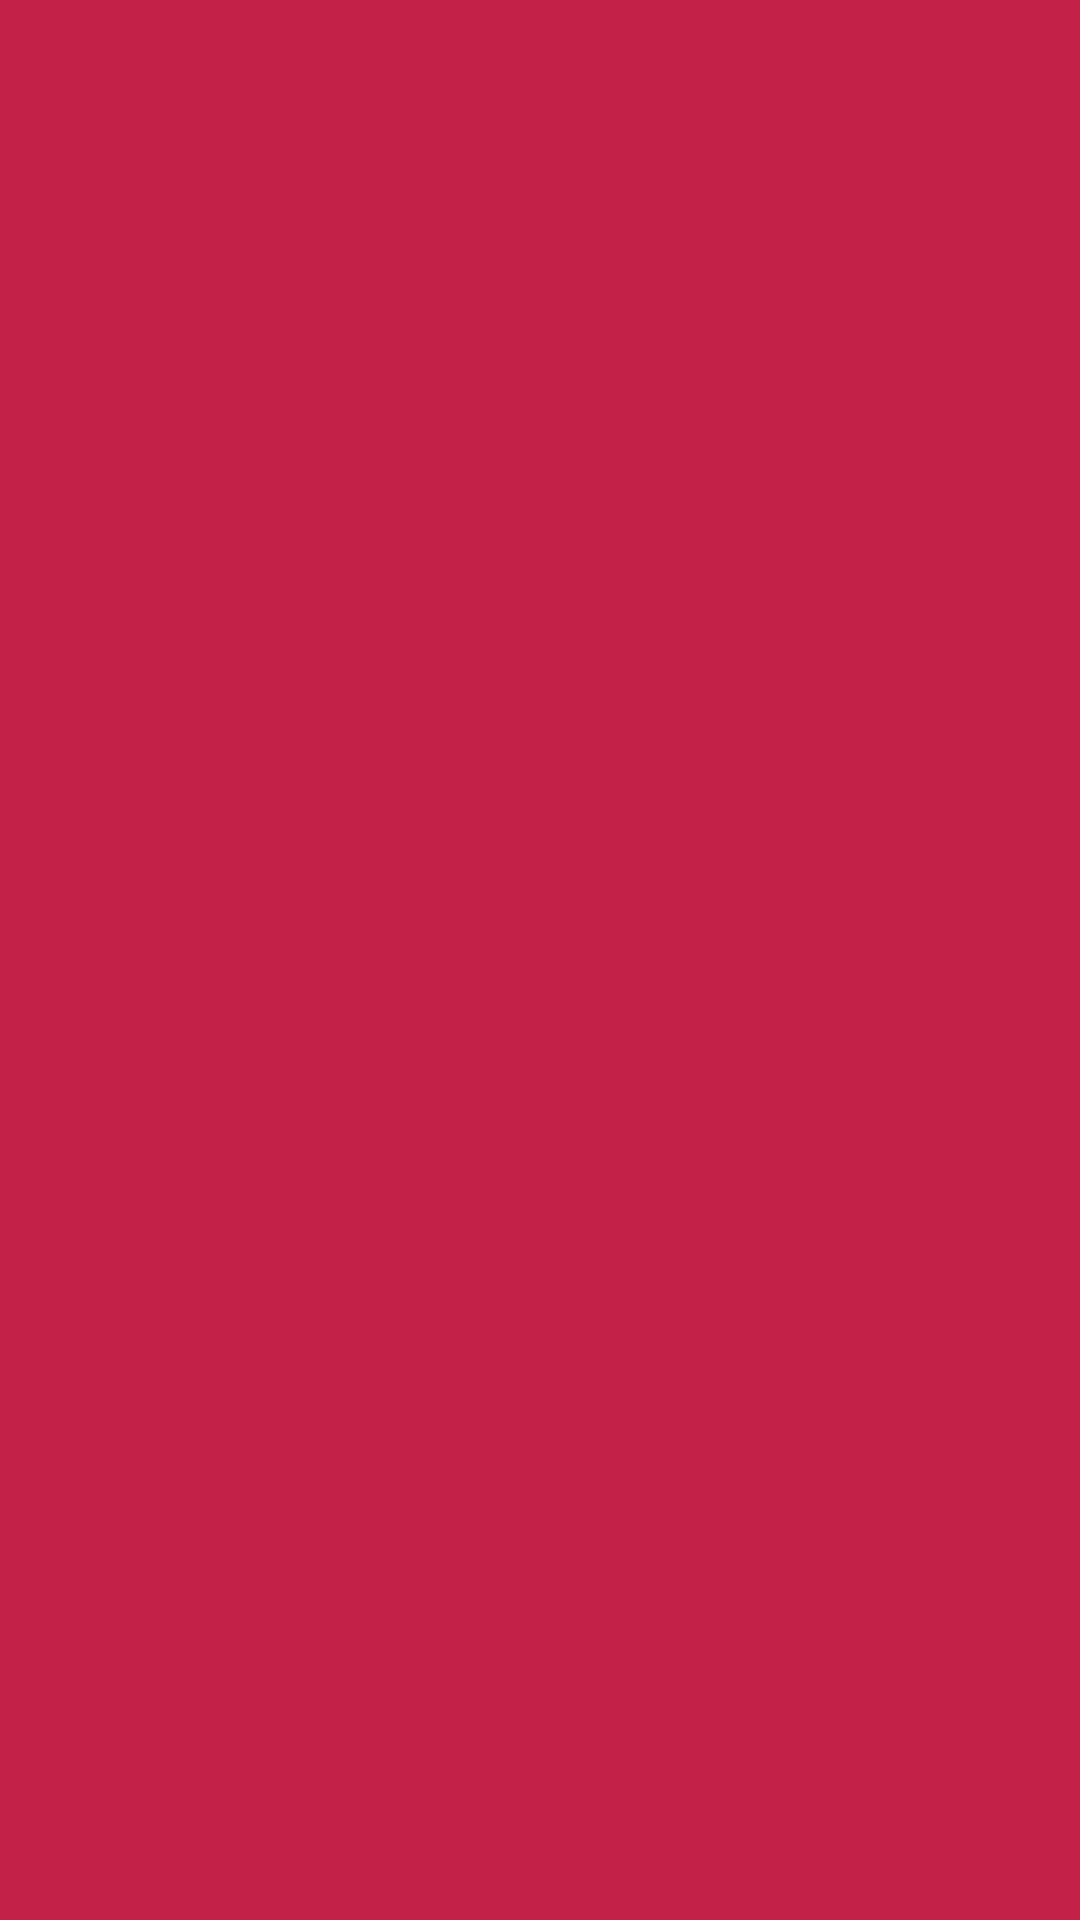 1080x1920 Bright Maroon Solid Color Background